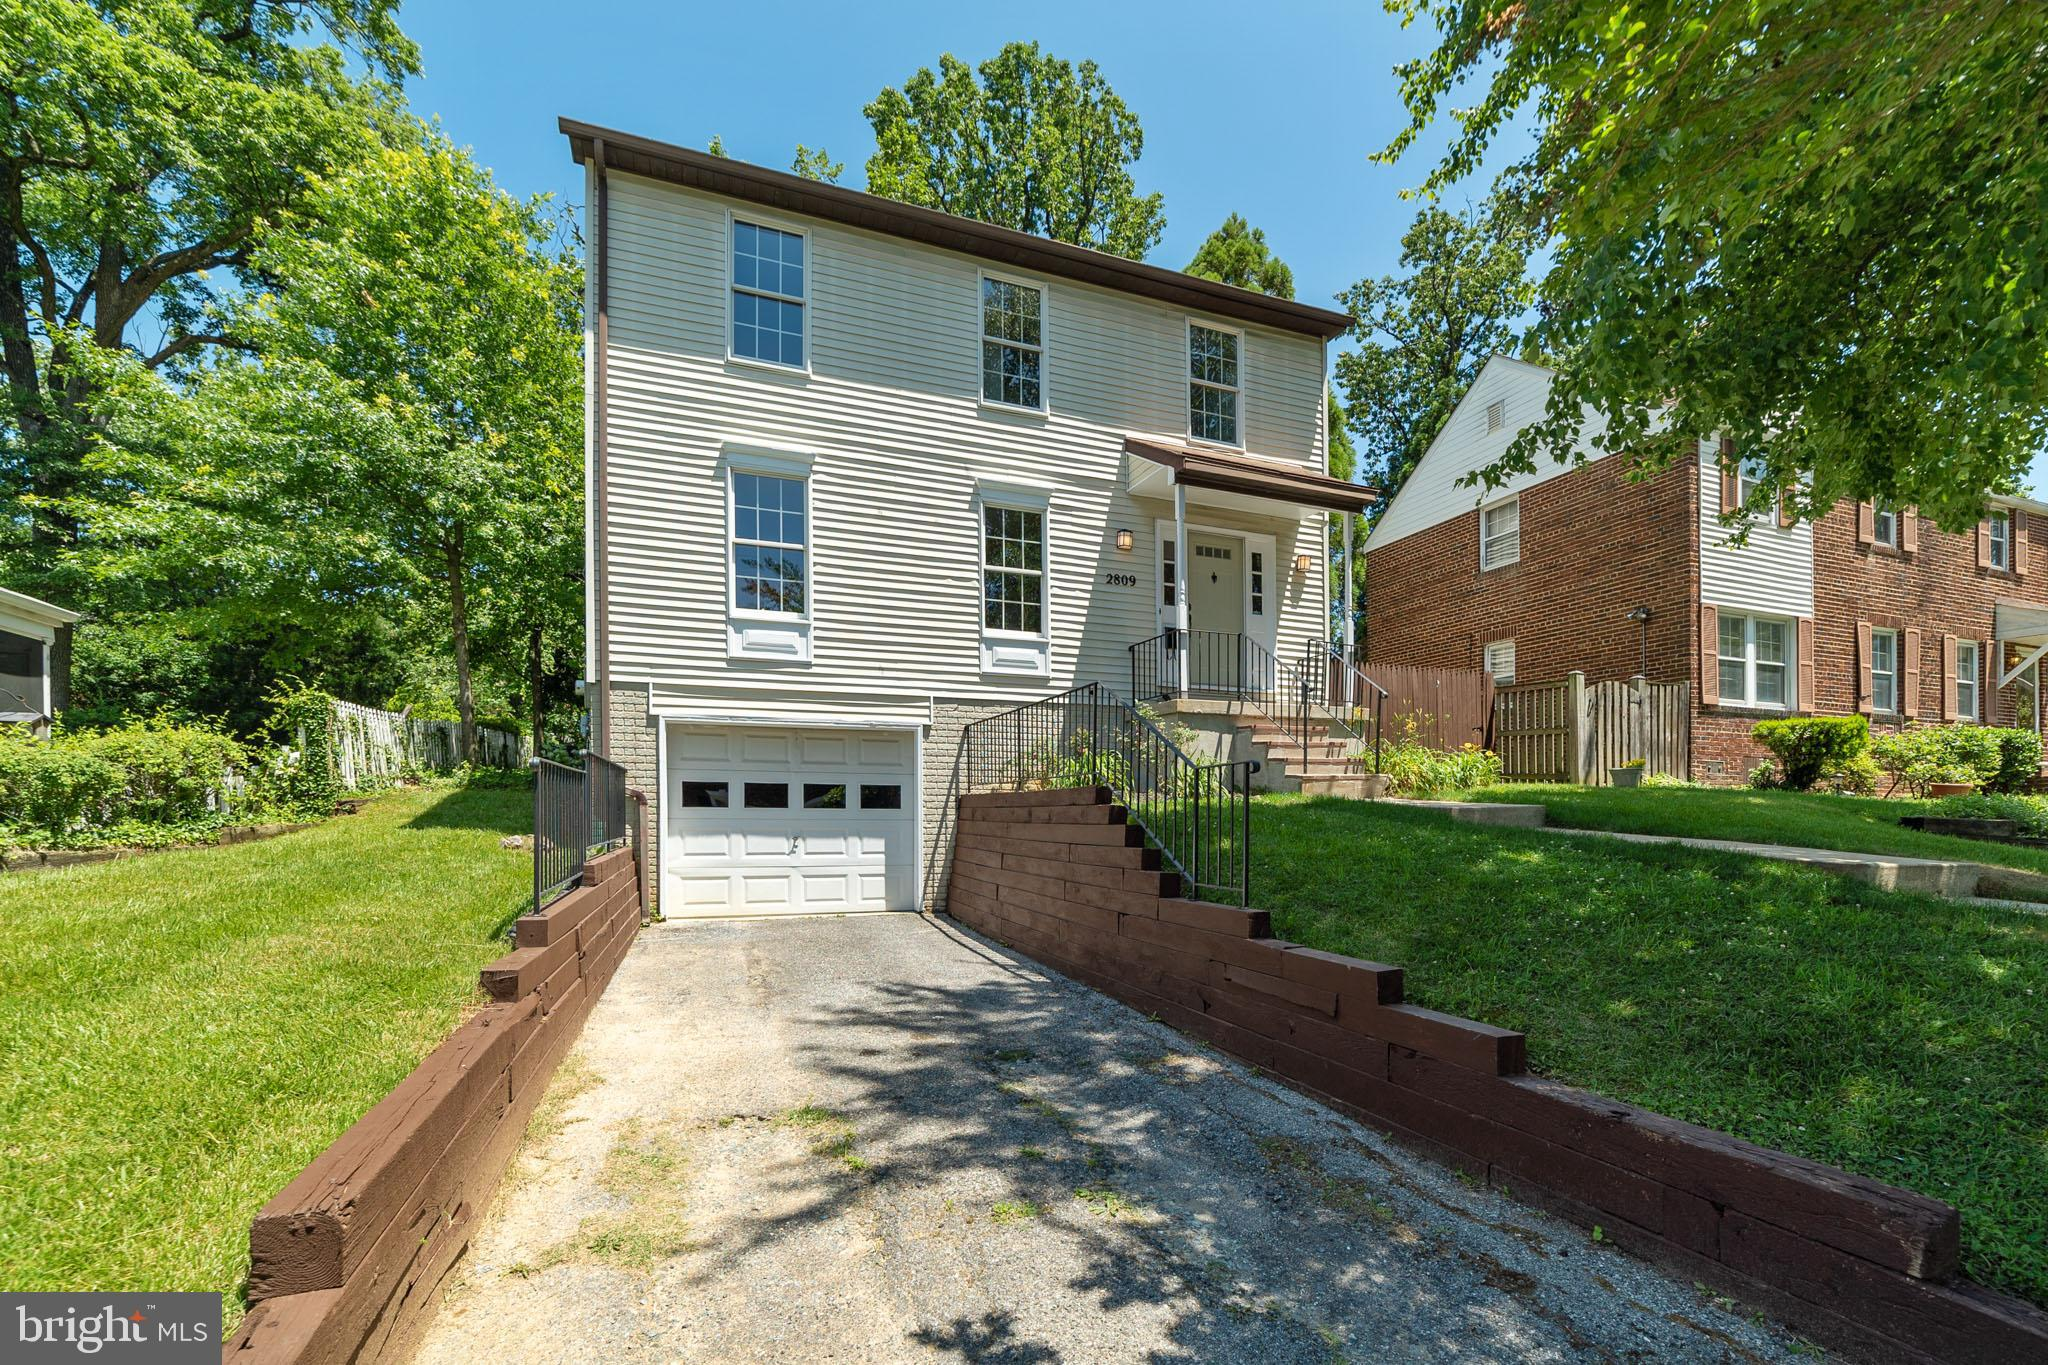 2809 LAUREL AVENUE, CHEVERLY, MD 20785